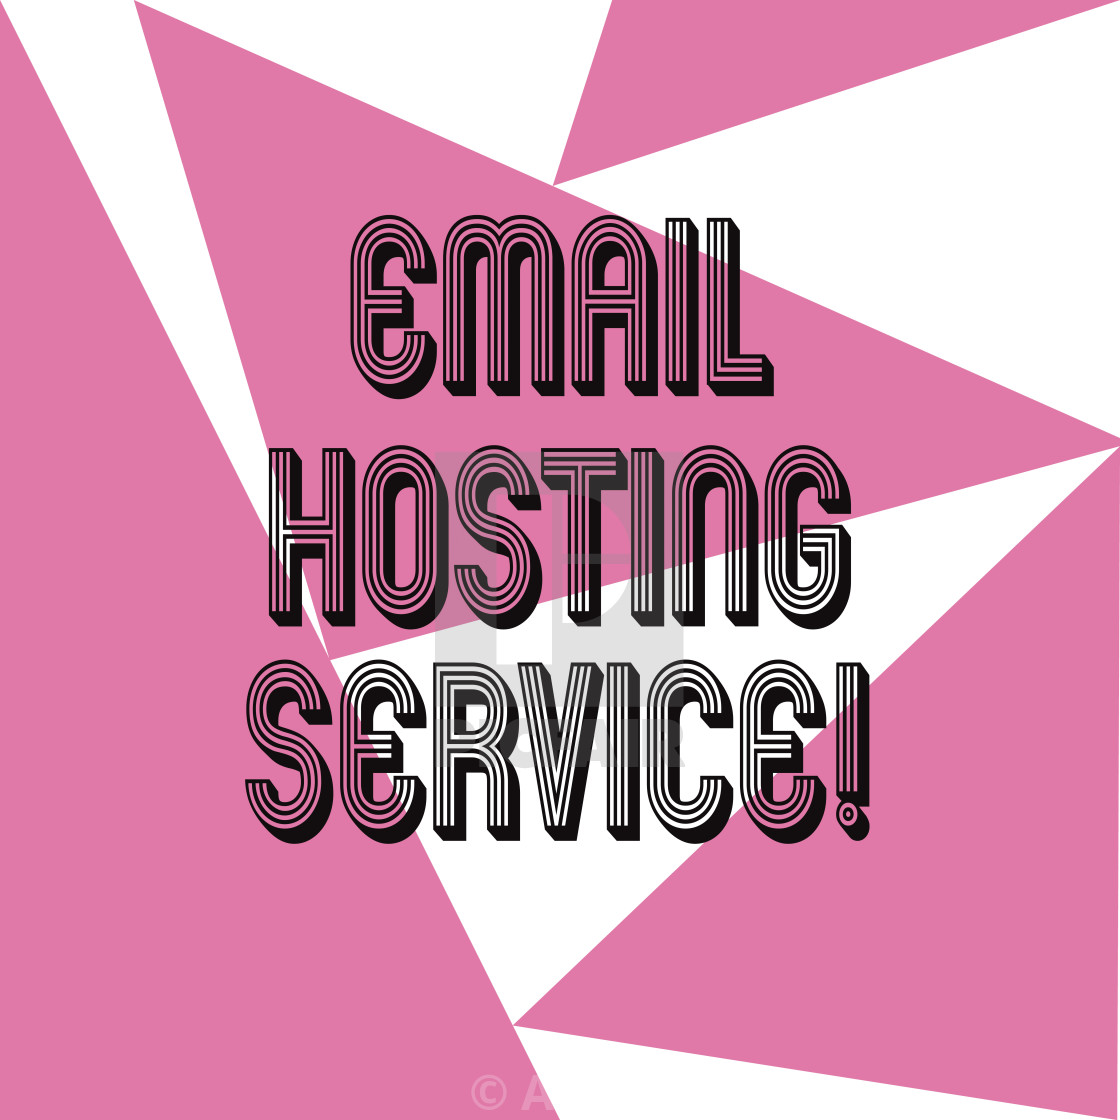 best email services